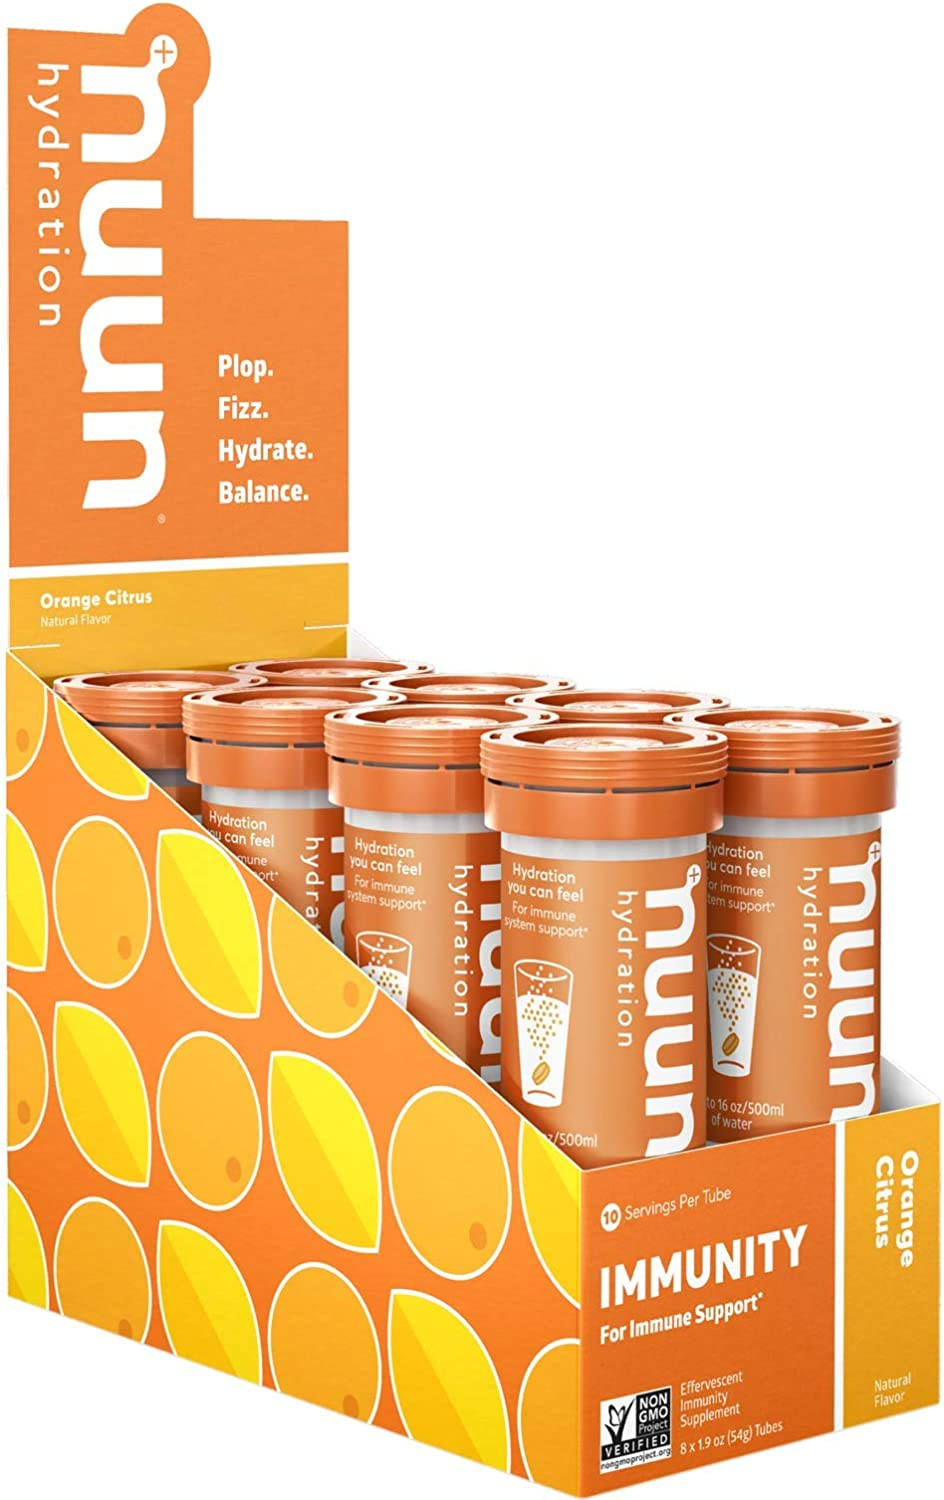 Nuun Immunity Antioxidant Immune Support Hydration Supplement with Vitamin C, Zinc, Turmeric, Elderberry, Ginger, Echinacea, and Electrolytes. Flavor Orange Citrus, 8 Tubes 80 Servings